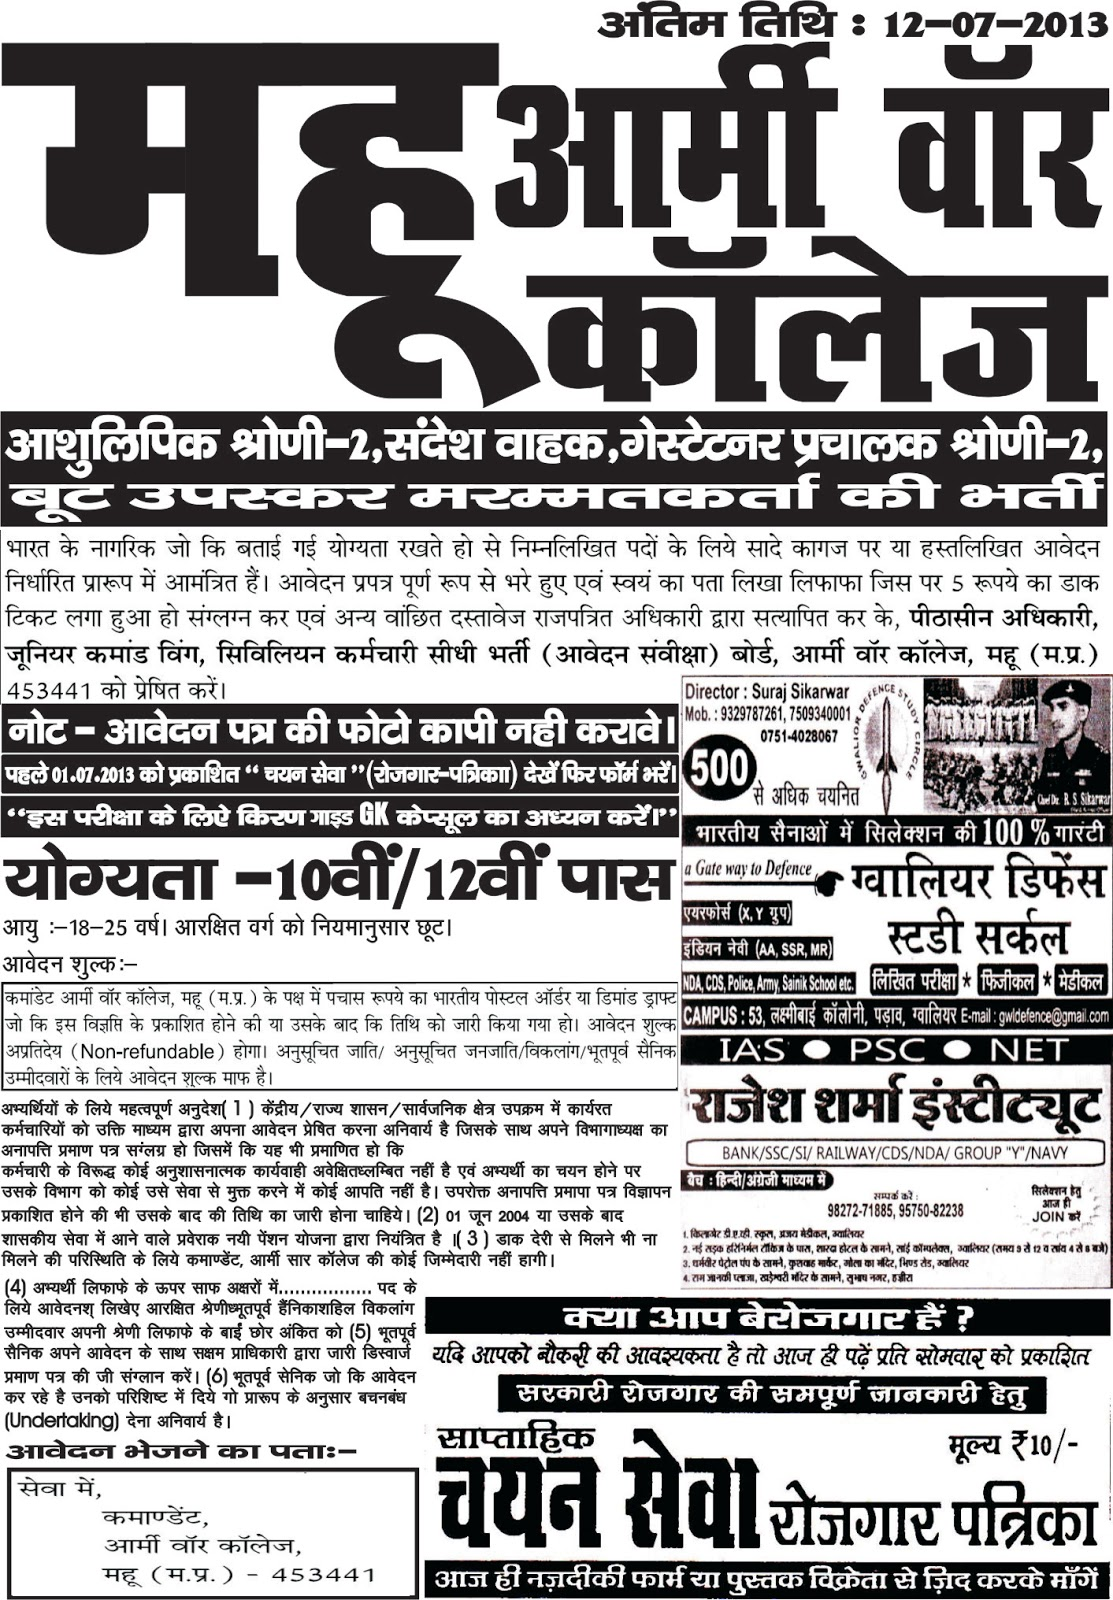 Army College, Mhow (MP) Recruitment –2013